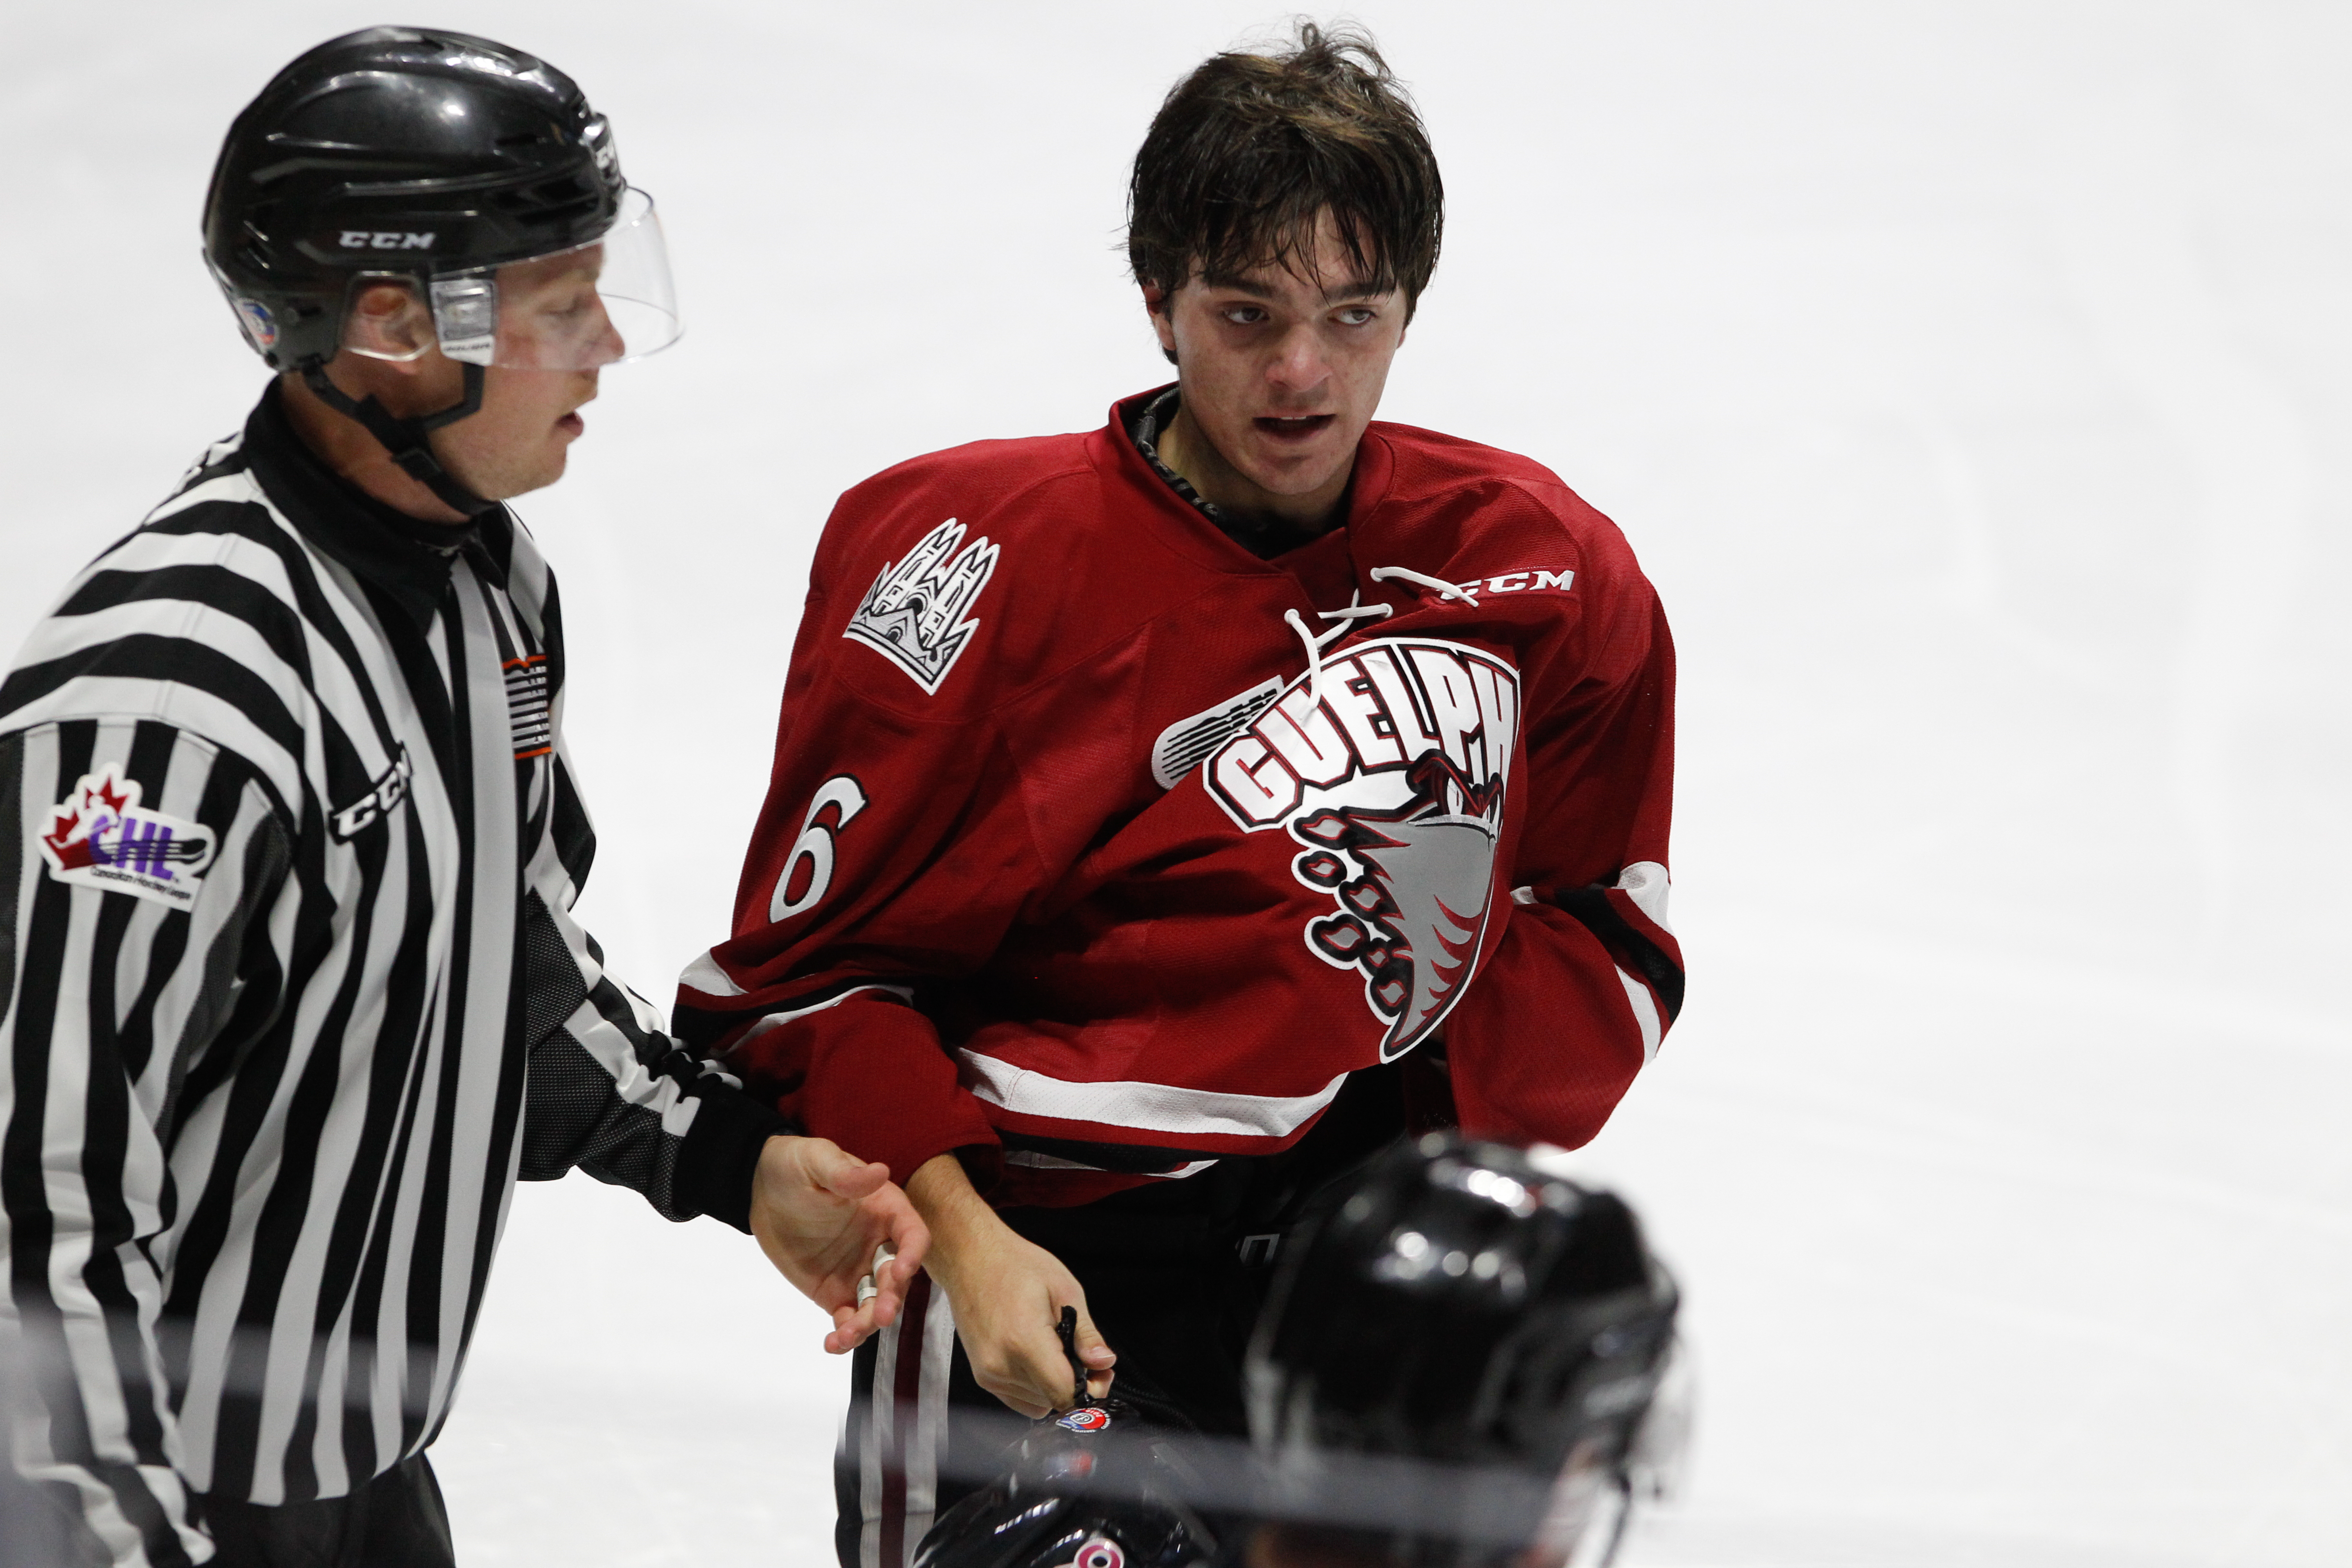 WINDSOR, ON - SEPTEMBER 24: Defenceman Ryan Merkley #6 of the Guelph Storm is escorted to the penalty box during a game against the Windsor Spitfires on September 24, 2017 at the WFCU Centre in Windsor, Ontario, Canada.